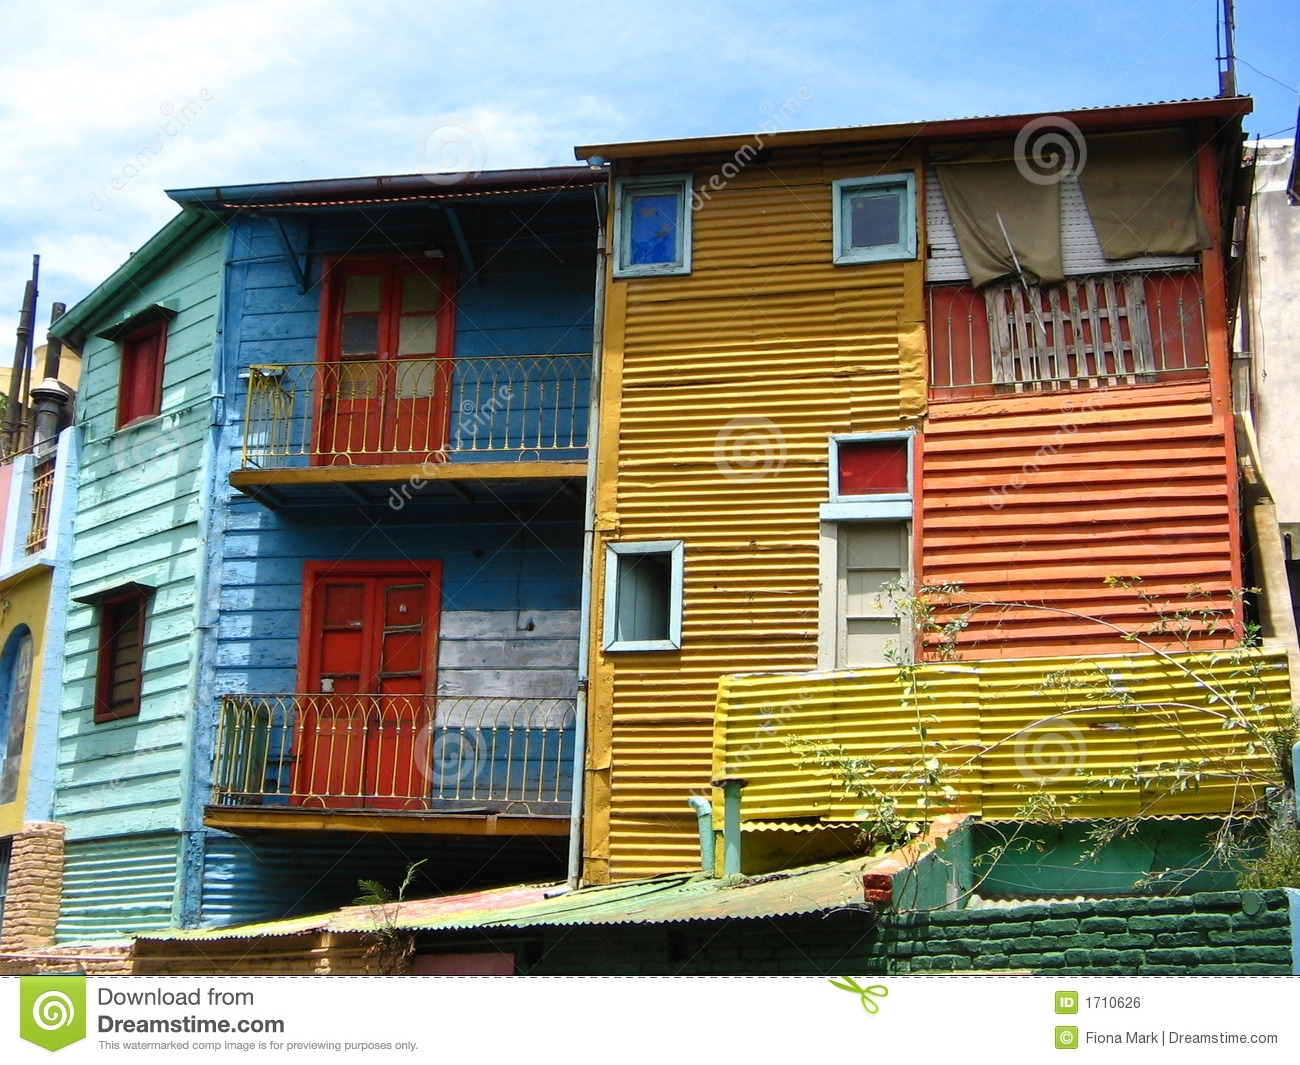 Colourful Buildings in La Boca, Buenos Aires